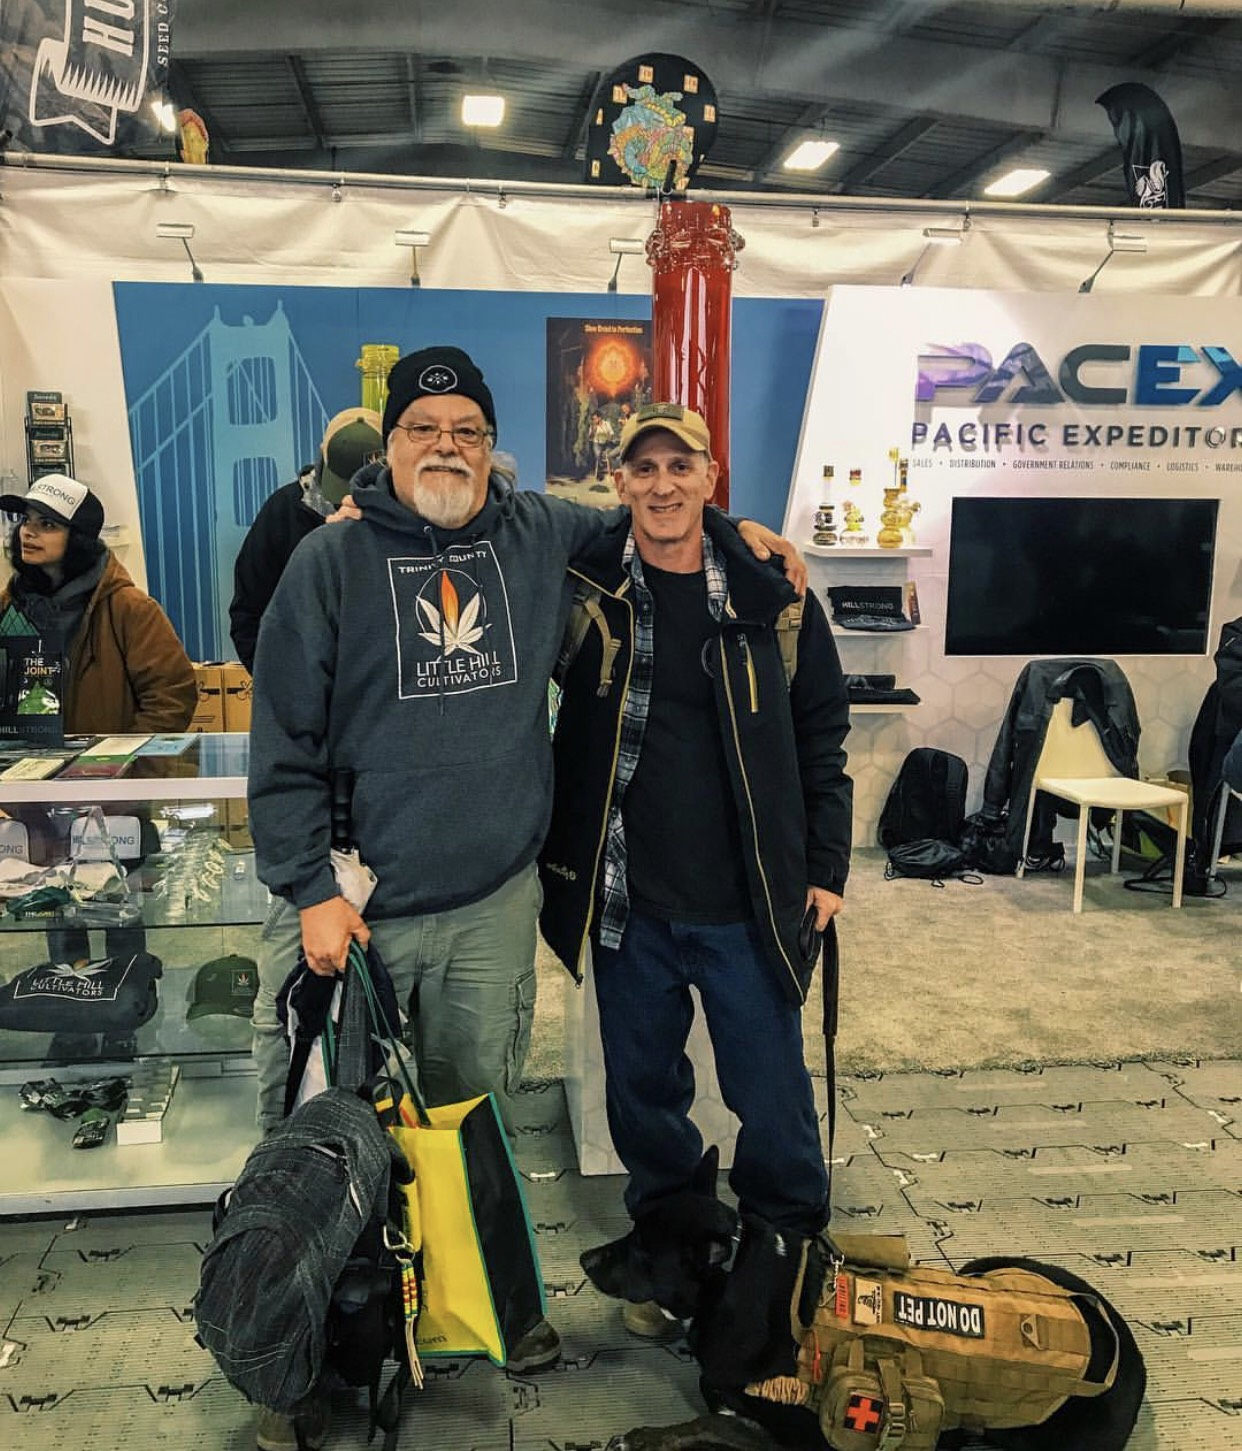 PacEx CEO Chris Coulombe is a military veteran who served 16 years in the Army and Marine Corps. He offered FREE Sunday passes to this year's Emerald Cup to any vet who followed @pac_ex and sent them a DM on Instagram. Here are two winners, Rob Gershon and Bill Crain, Navy and Air Force vets respectively. Thank you for your service!